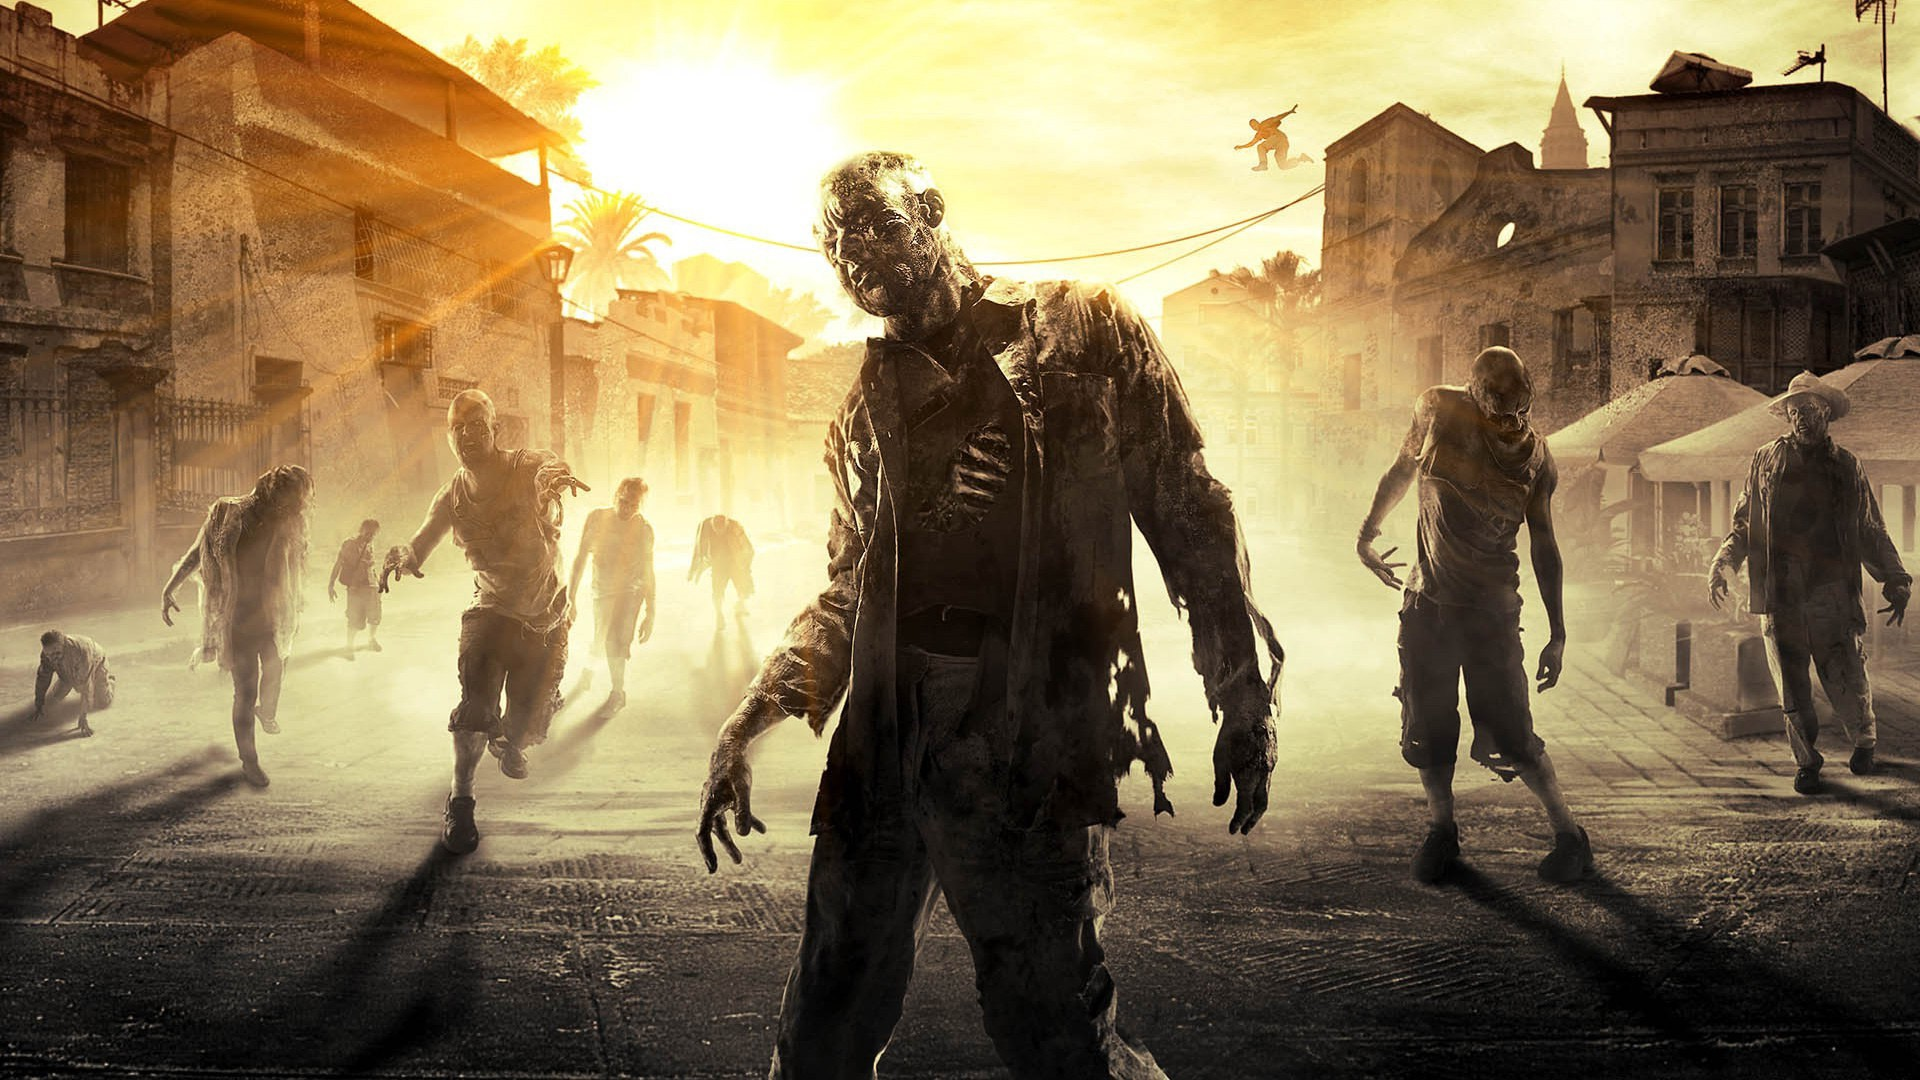 Free Download Fonds Dcran Dying Light Tous Les Wallpapers Dying